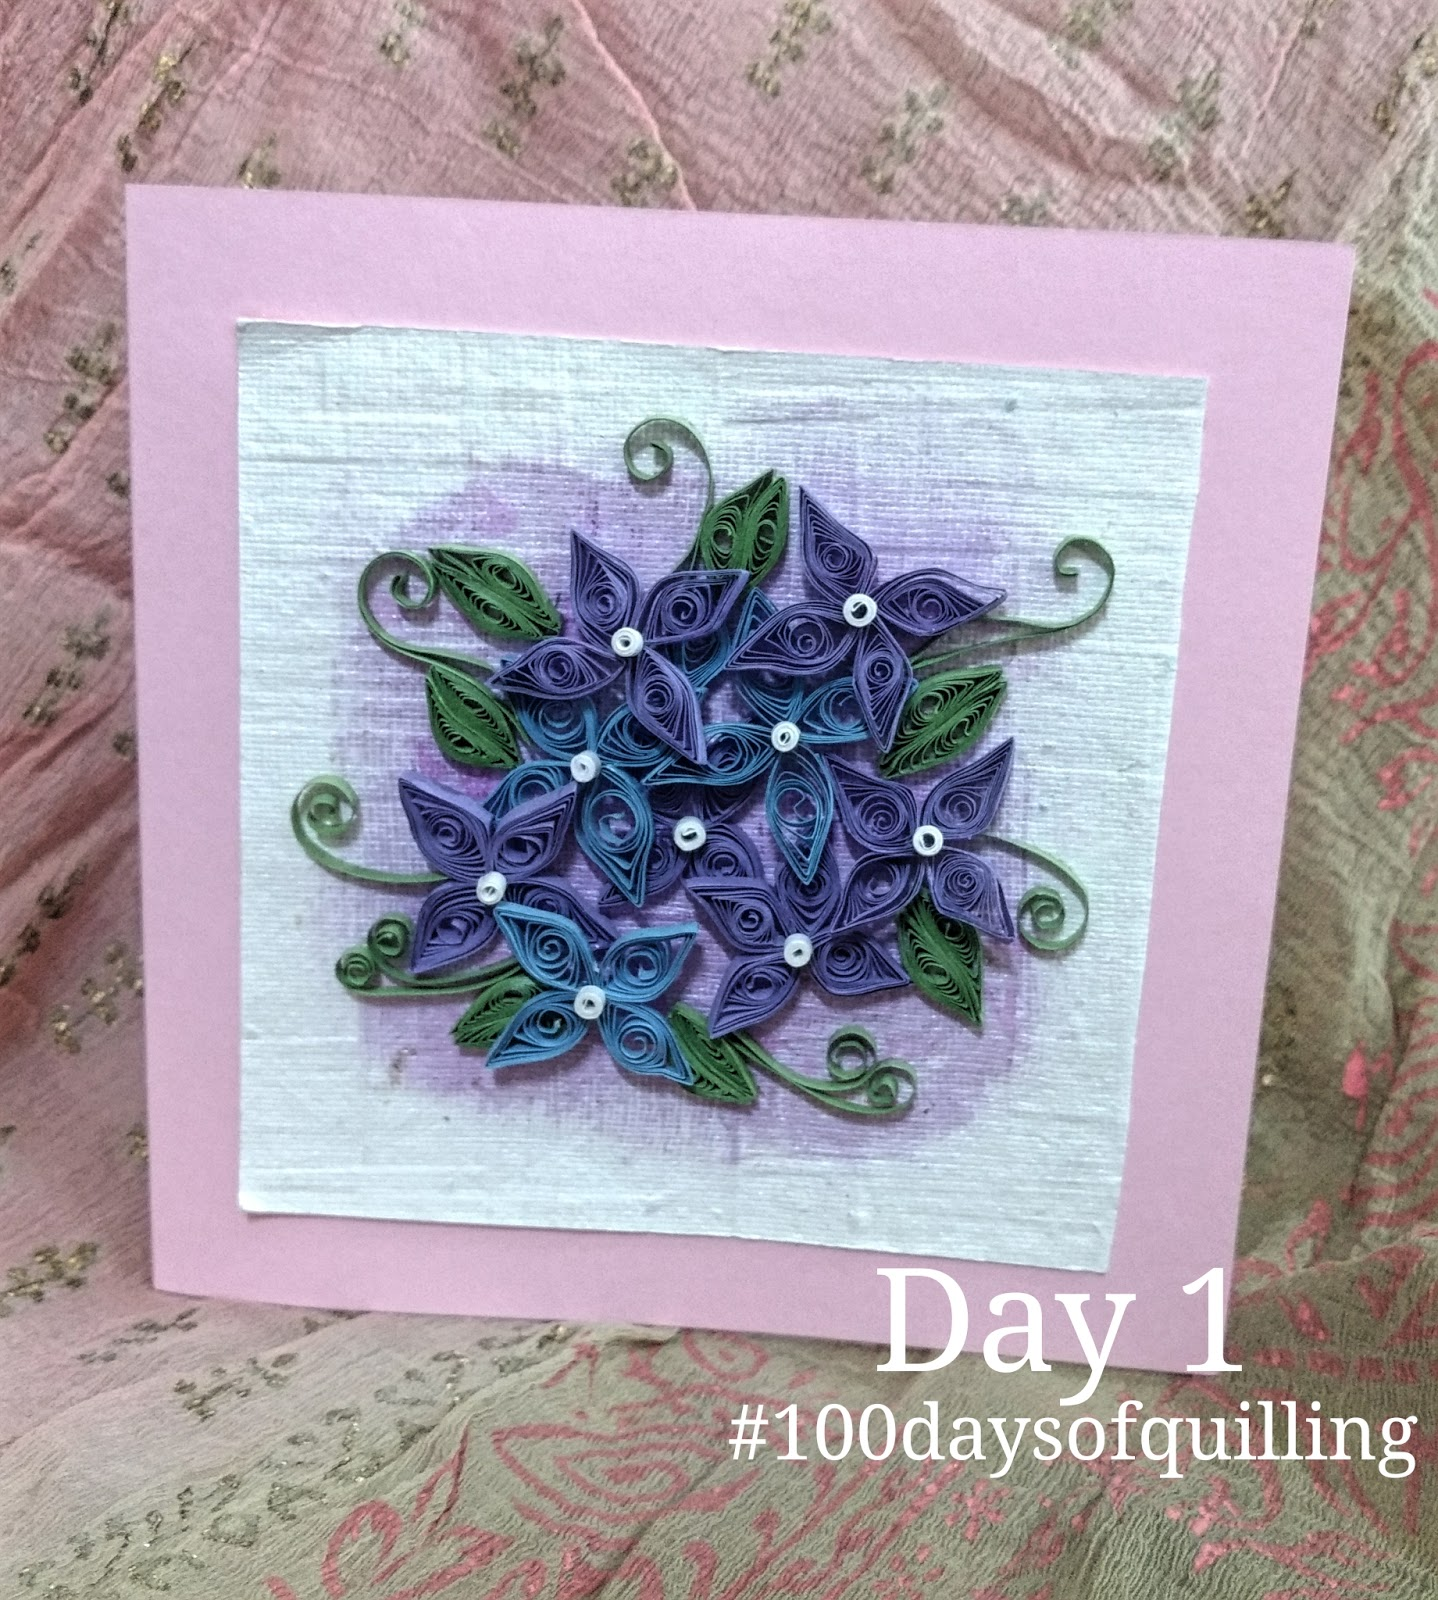 mycraftworks 100 days of quilling challenge by Just love crafts